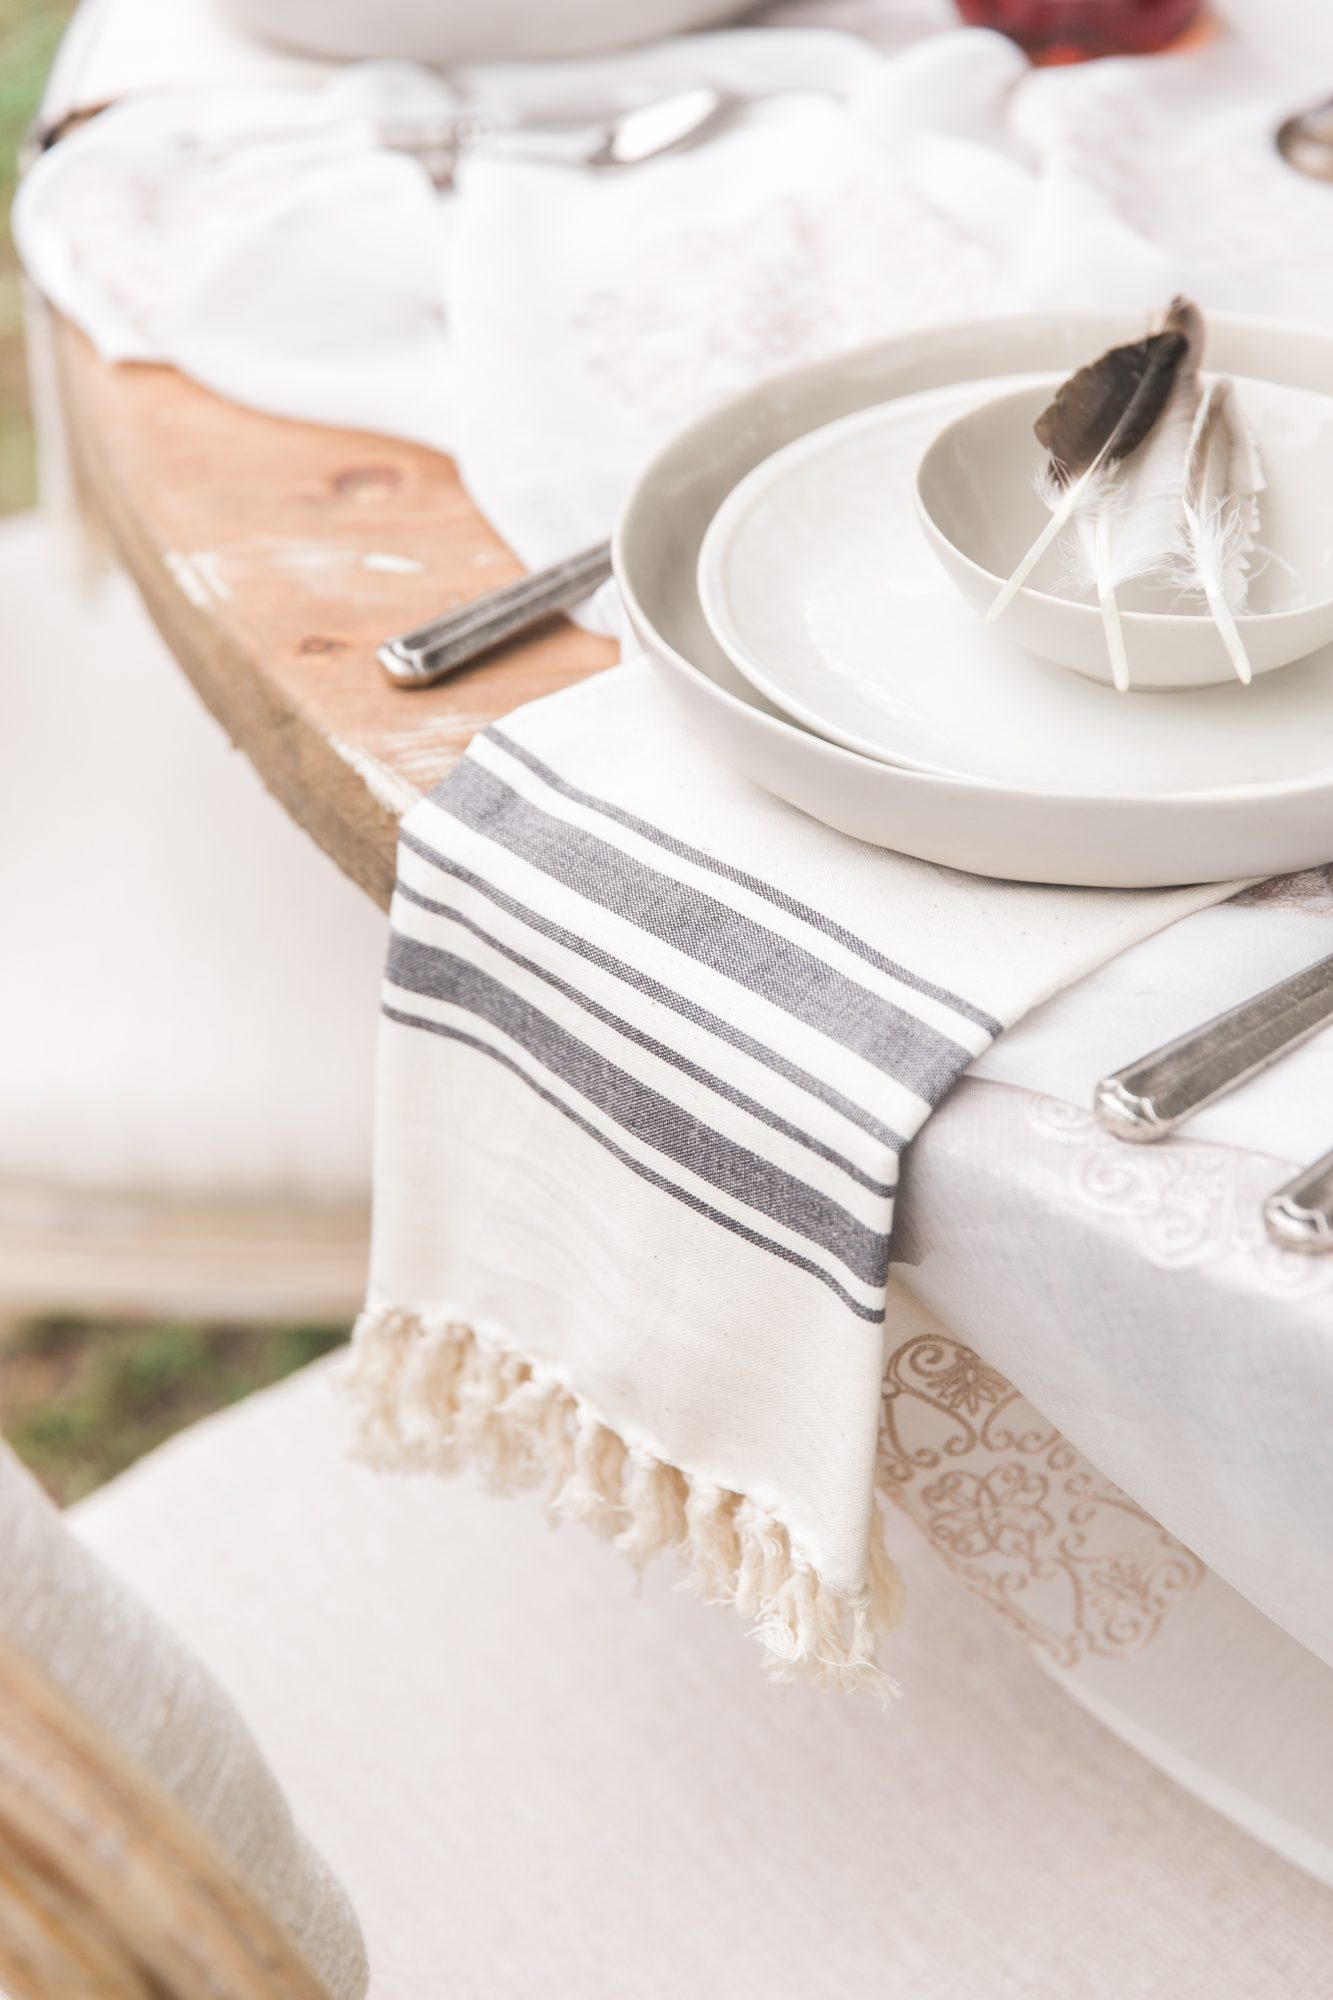 Countryside Whimsy Wedding Tablesetting